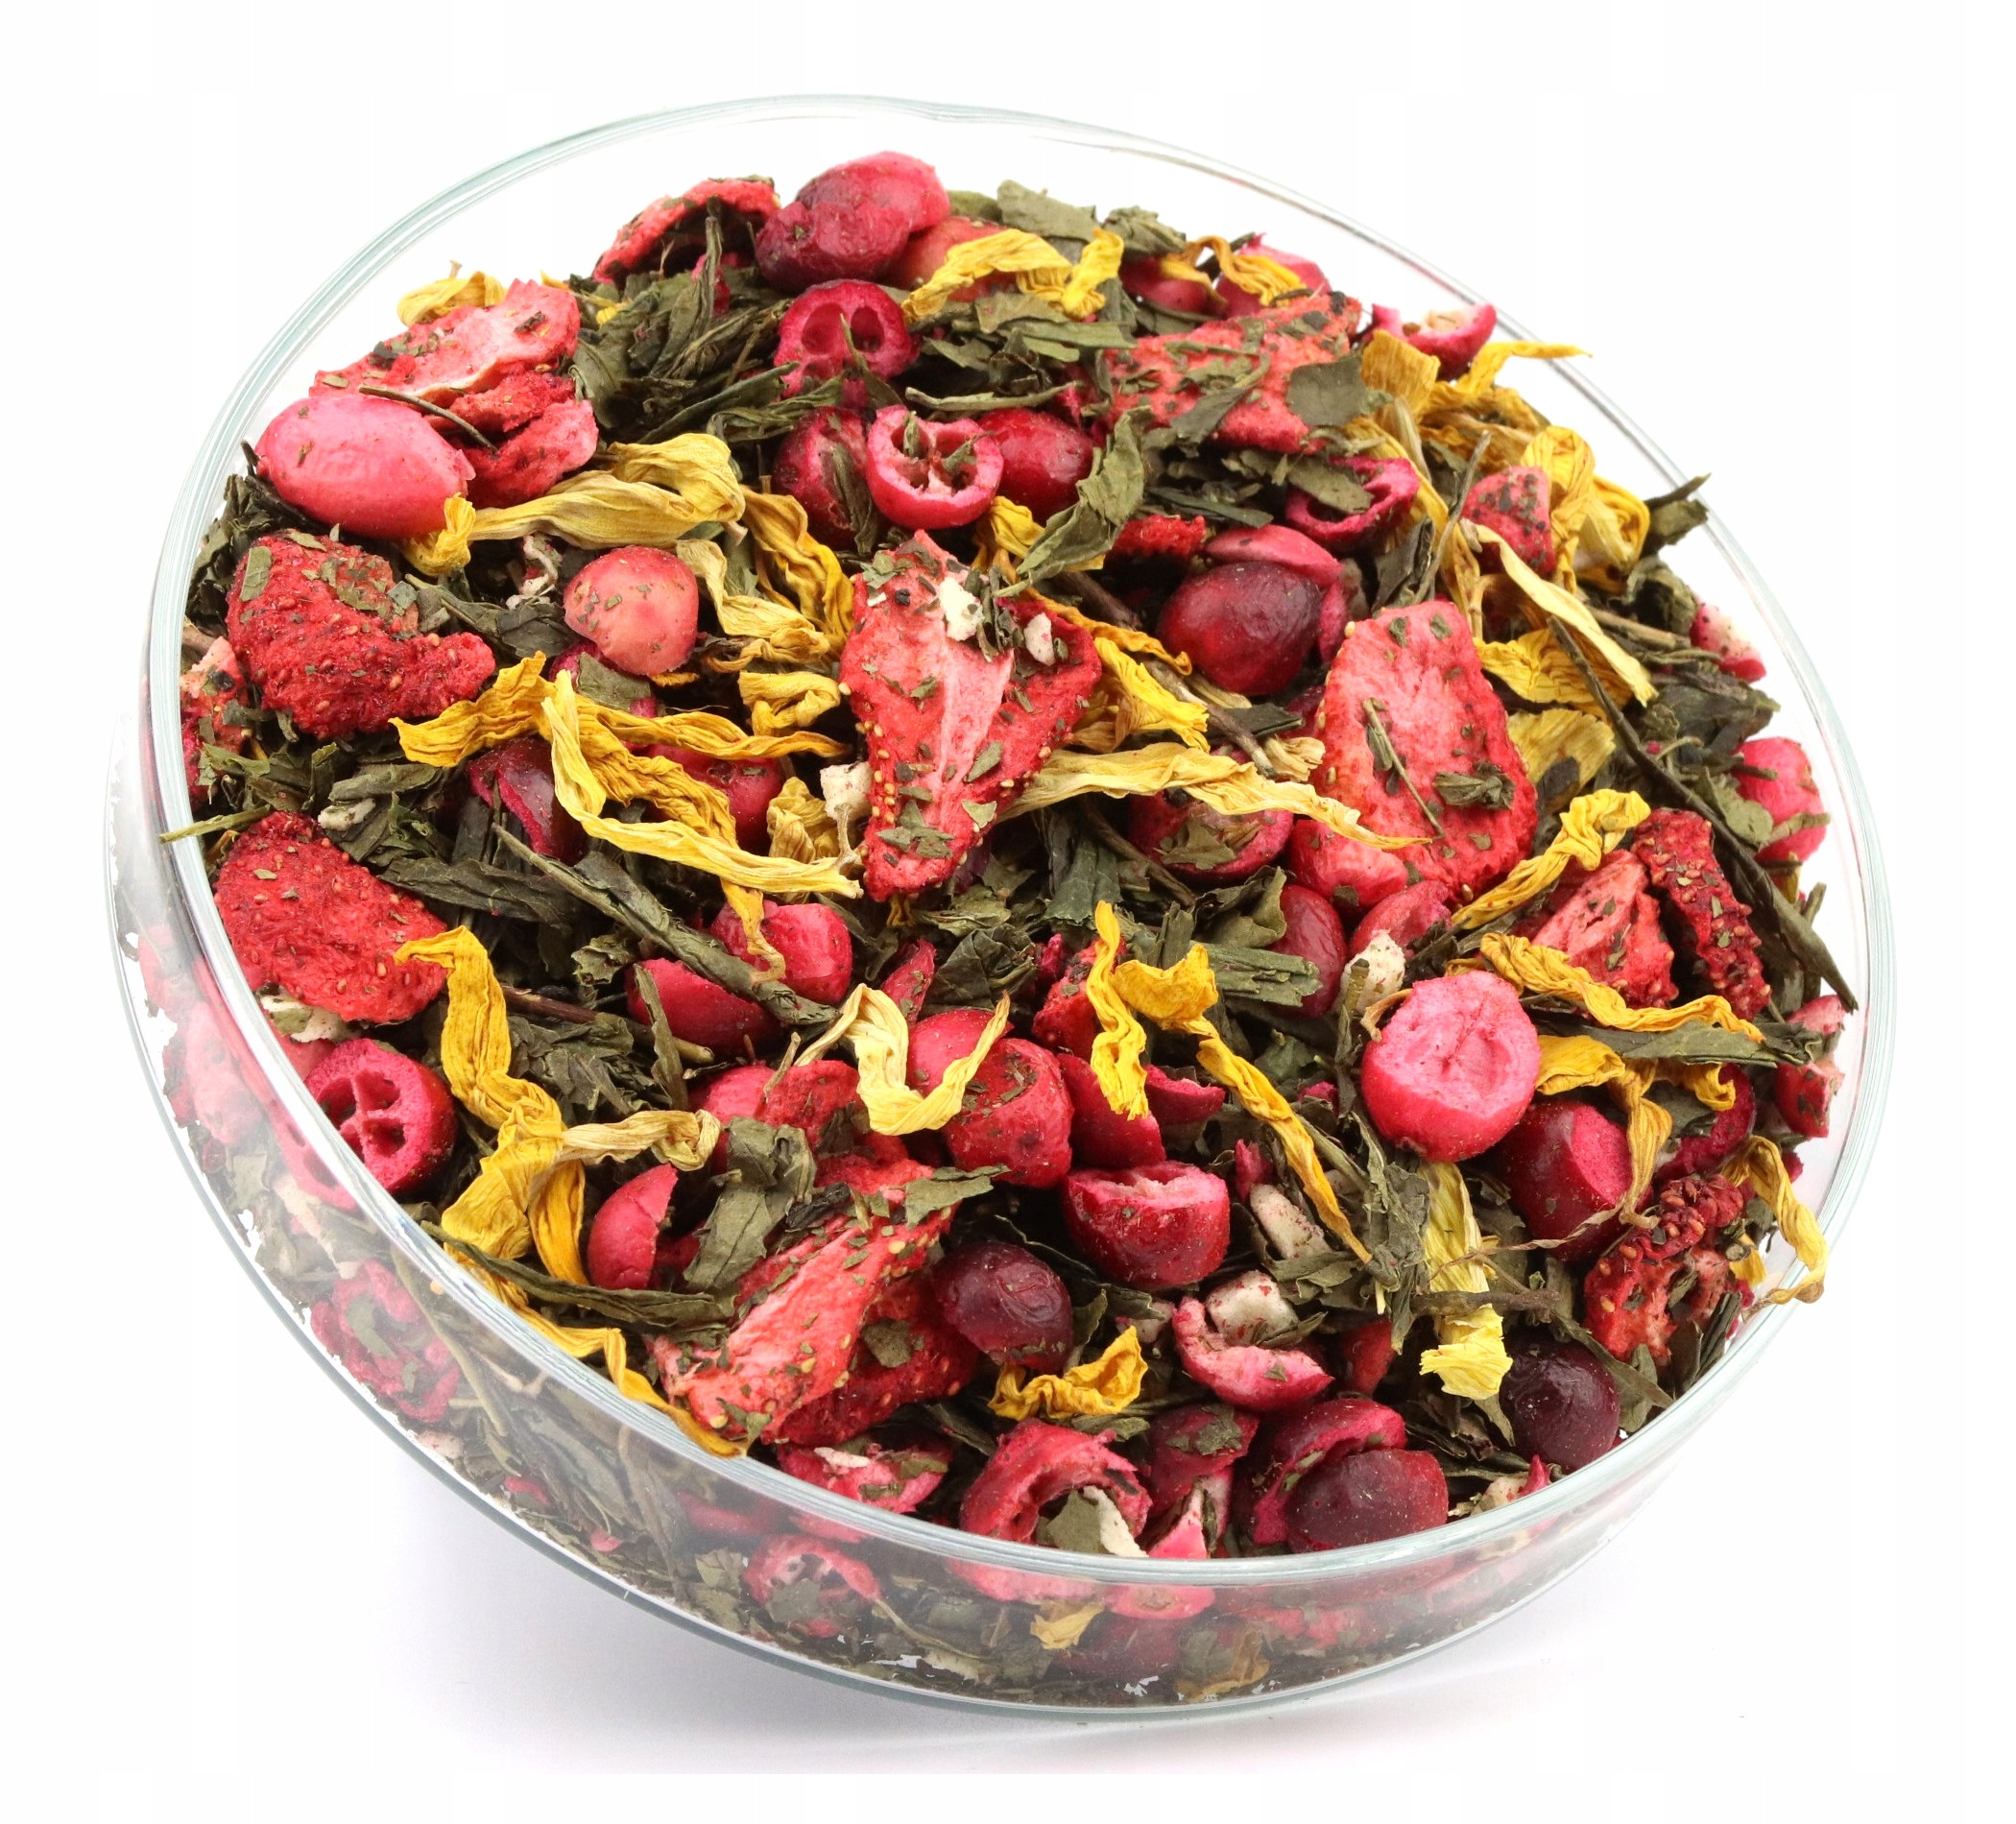 Item GREEN tea the GARDEN of Eden fruit excellent 50g